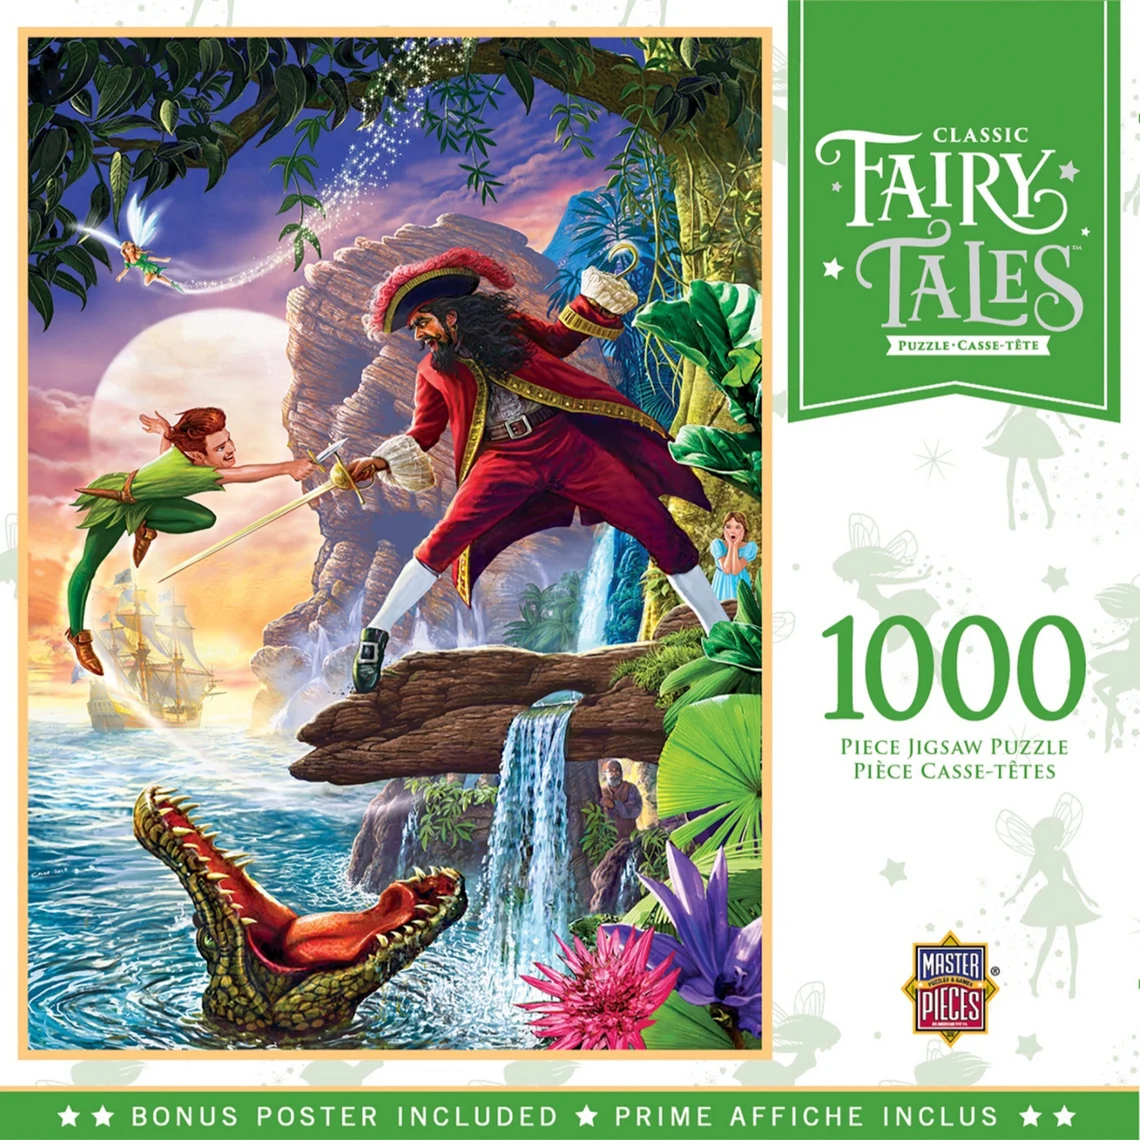 puzzle based on kid's book Peter Pan features Peter sword fighting Hook with the crocodile waiting below